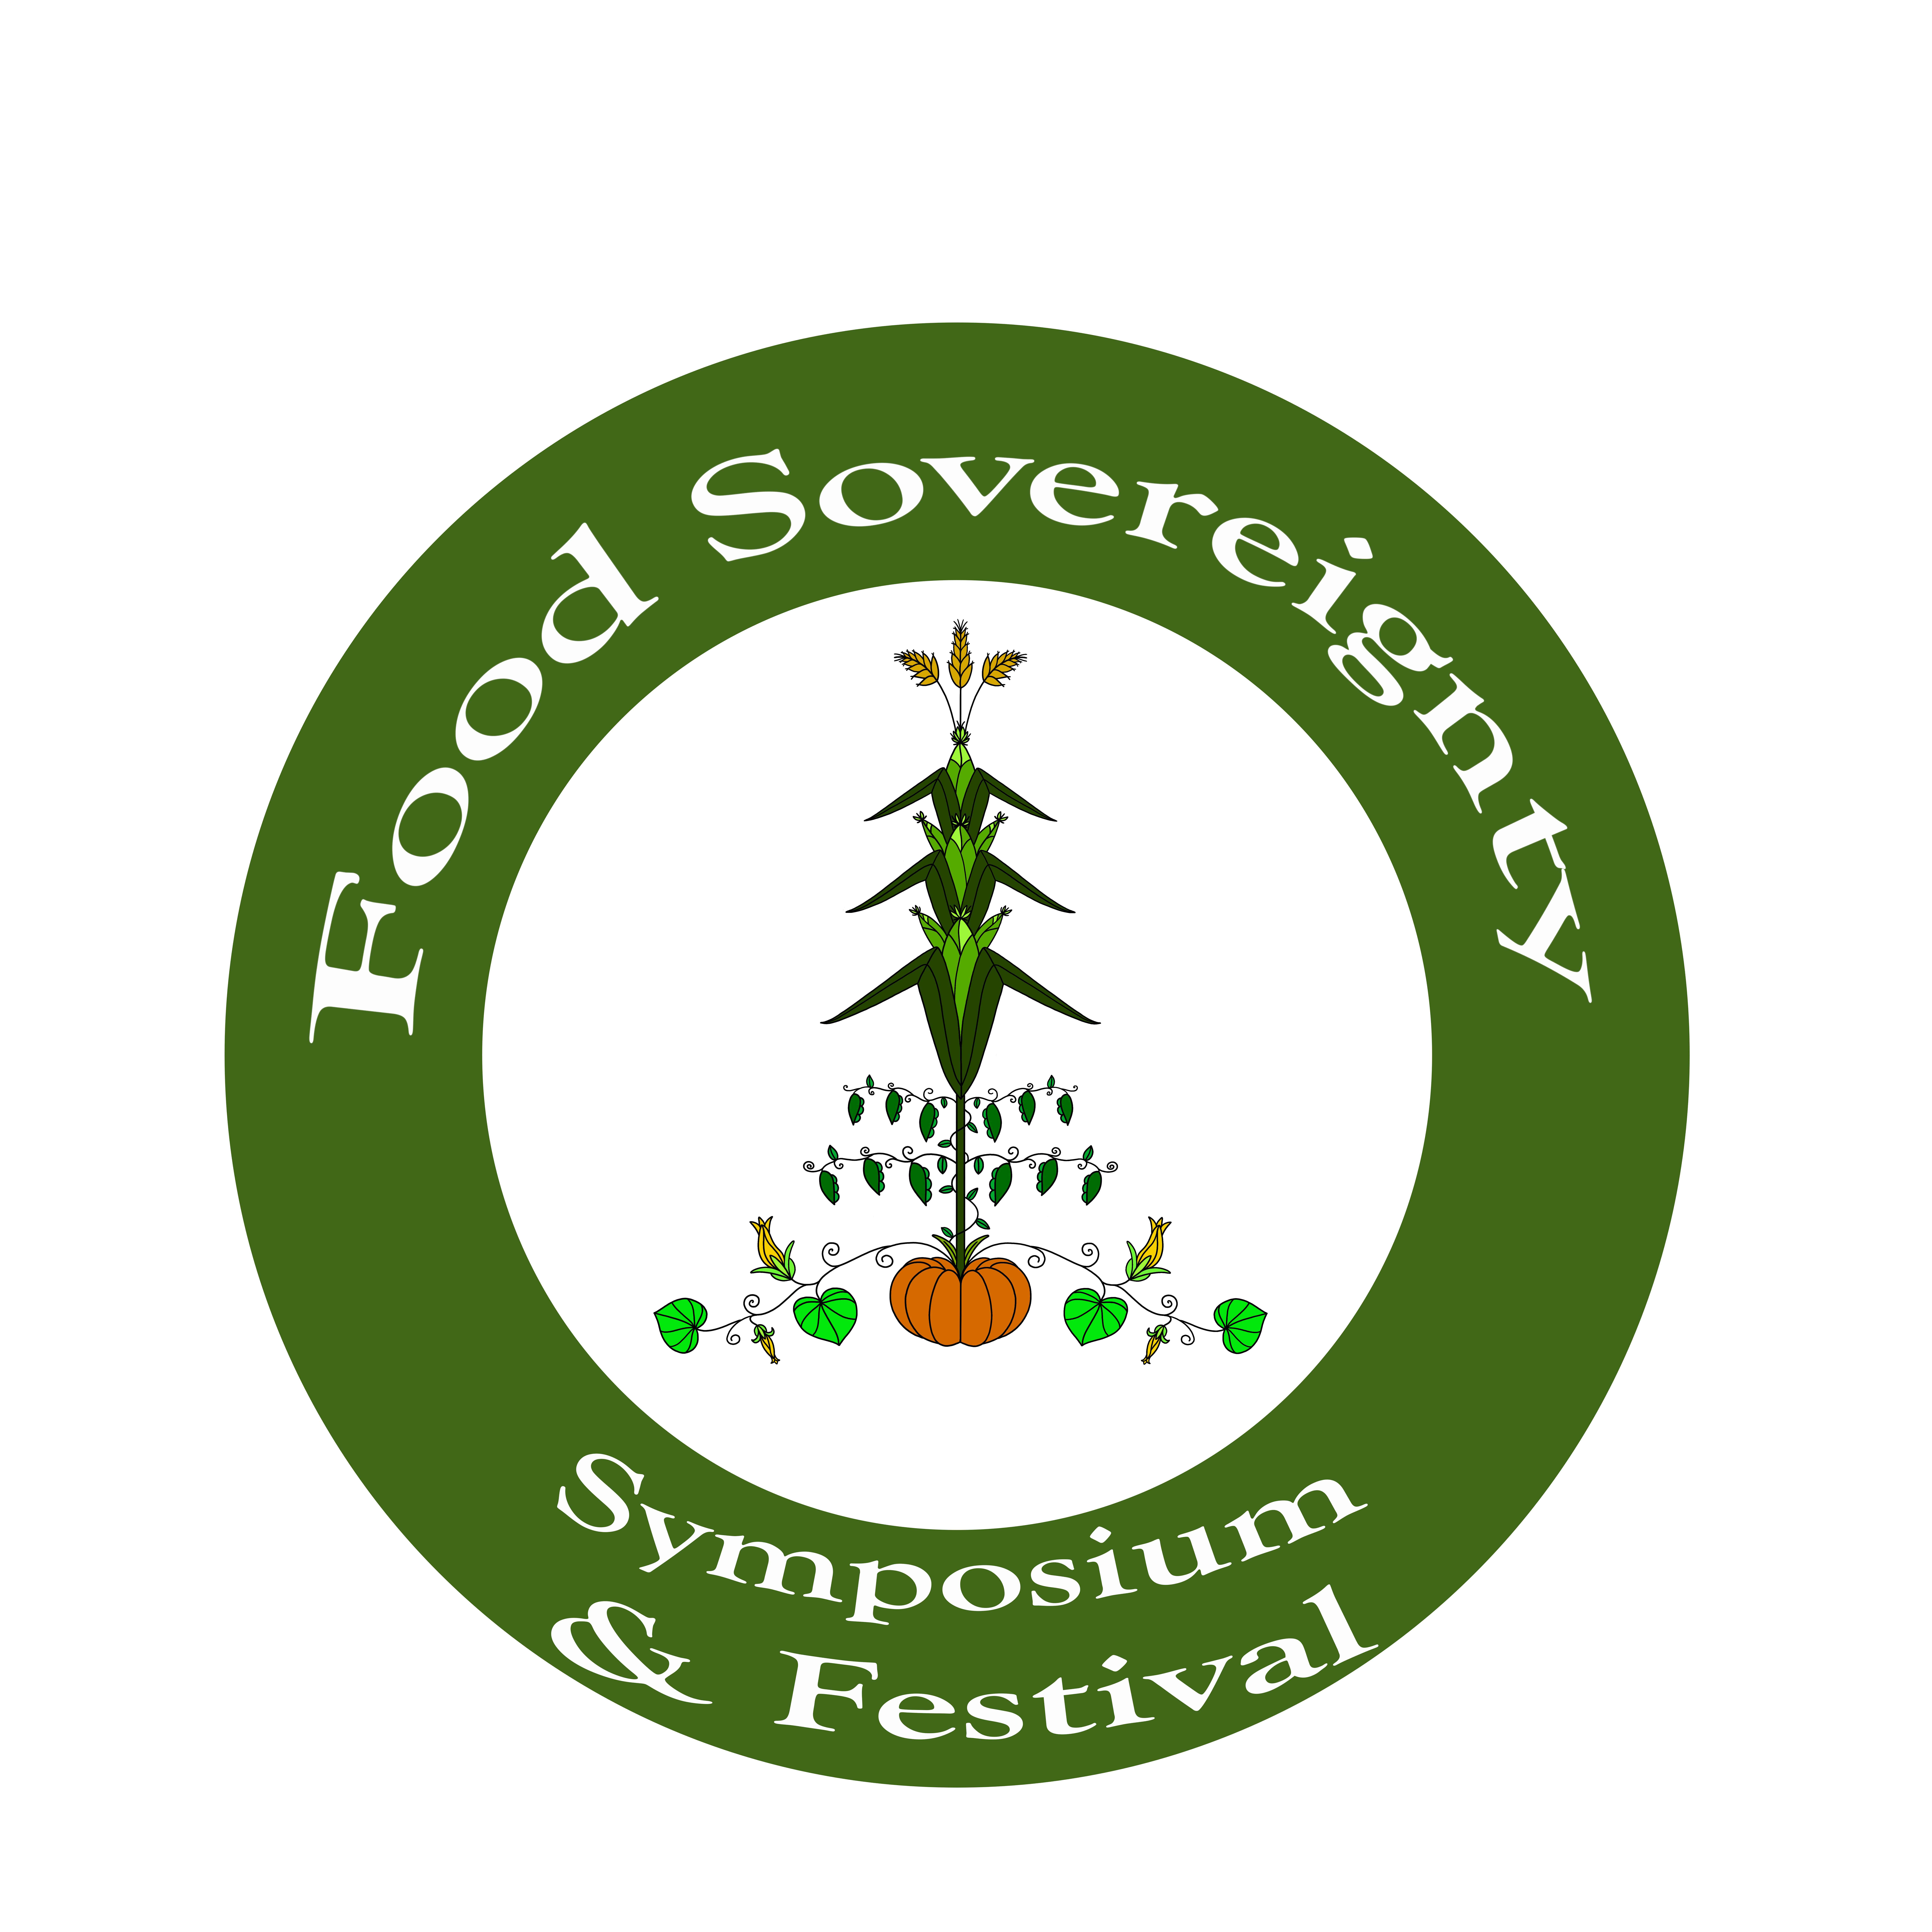 Food Sovereignty Symposium and Festival • March 10-12